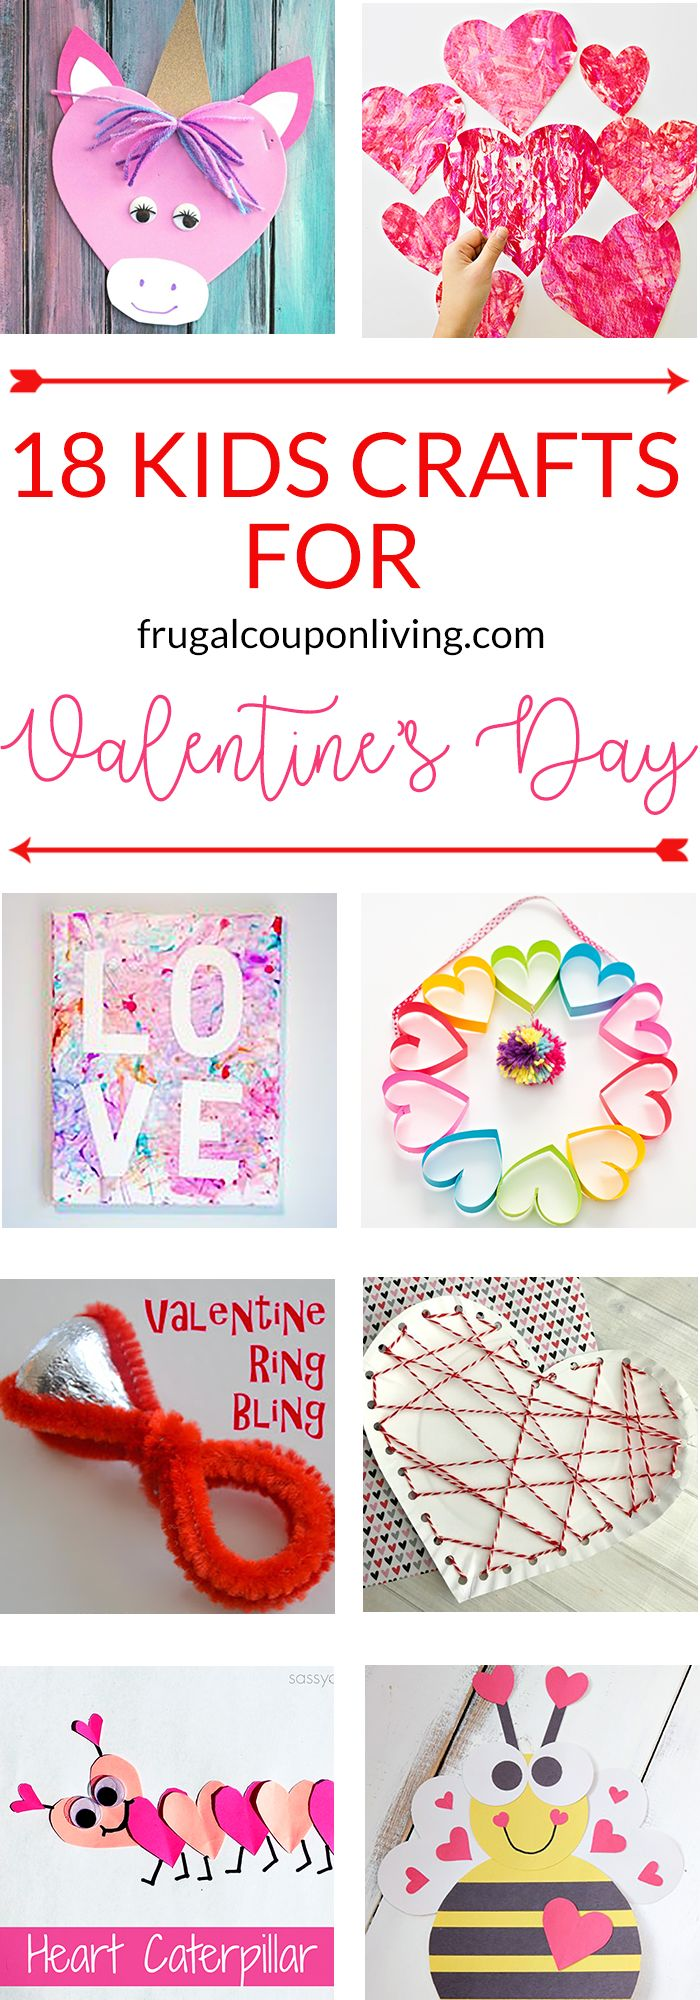 From classroom activities to handmade Valentines to play at home kids will love to make these 18 super cute DIY craft projects. Each of these Valentine crafts is easy enough for most ages to enjoy making. #valentinesday #kidscrafts #diyvalentines #crafts #valentine #valentinecrafts #valentinesdaycrafts #craftsforkids #homedaycare